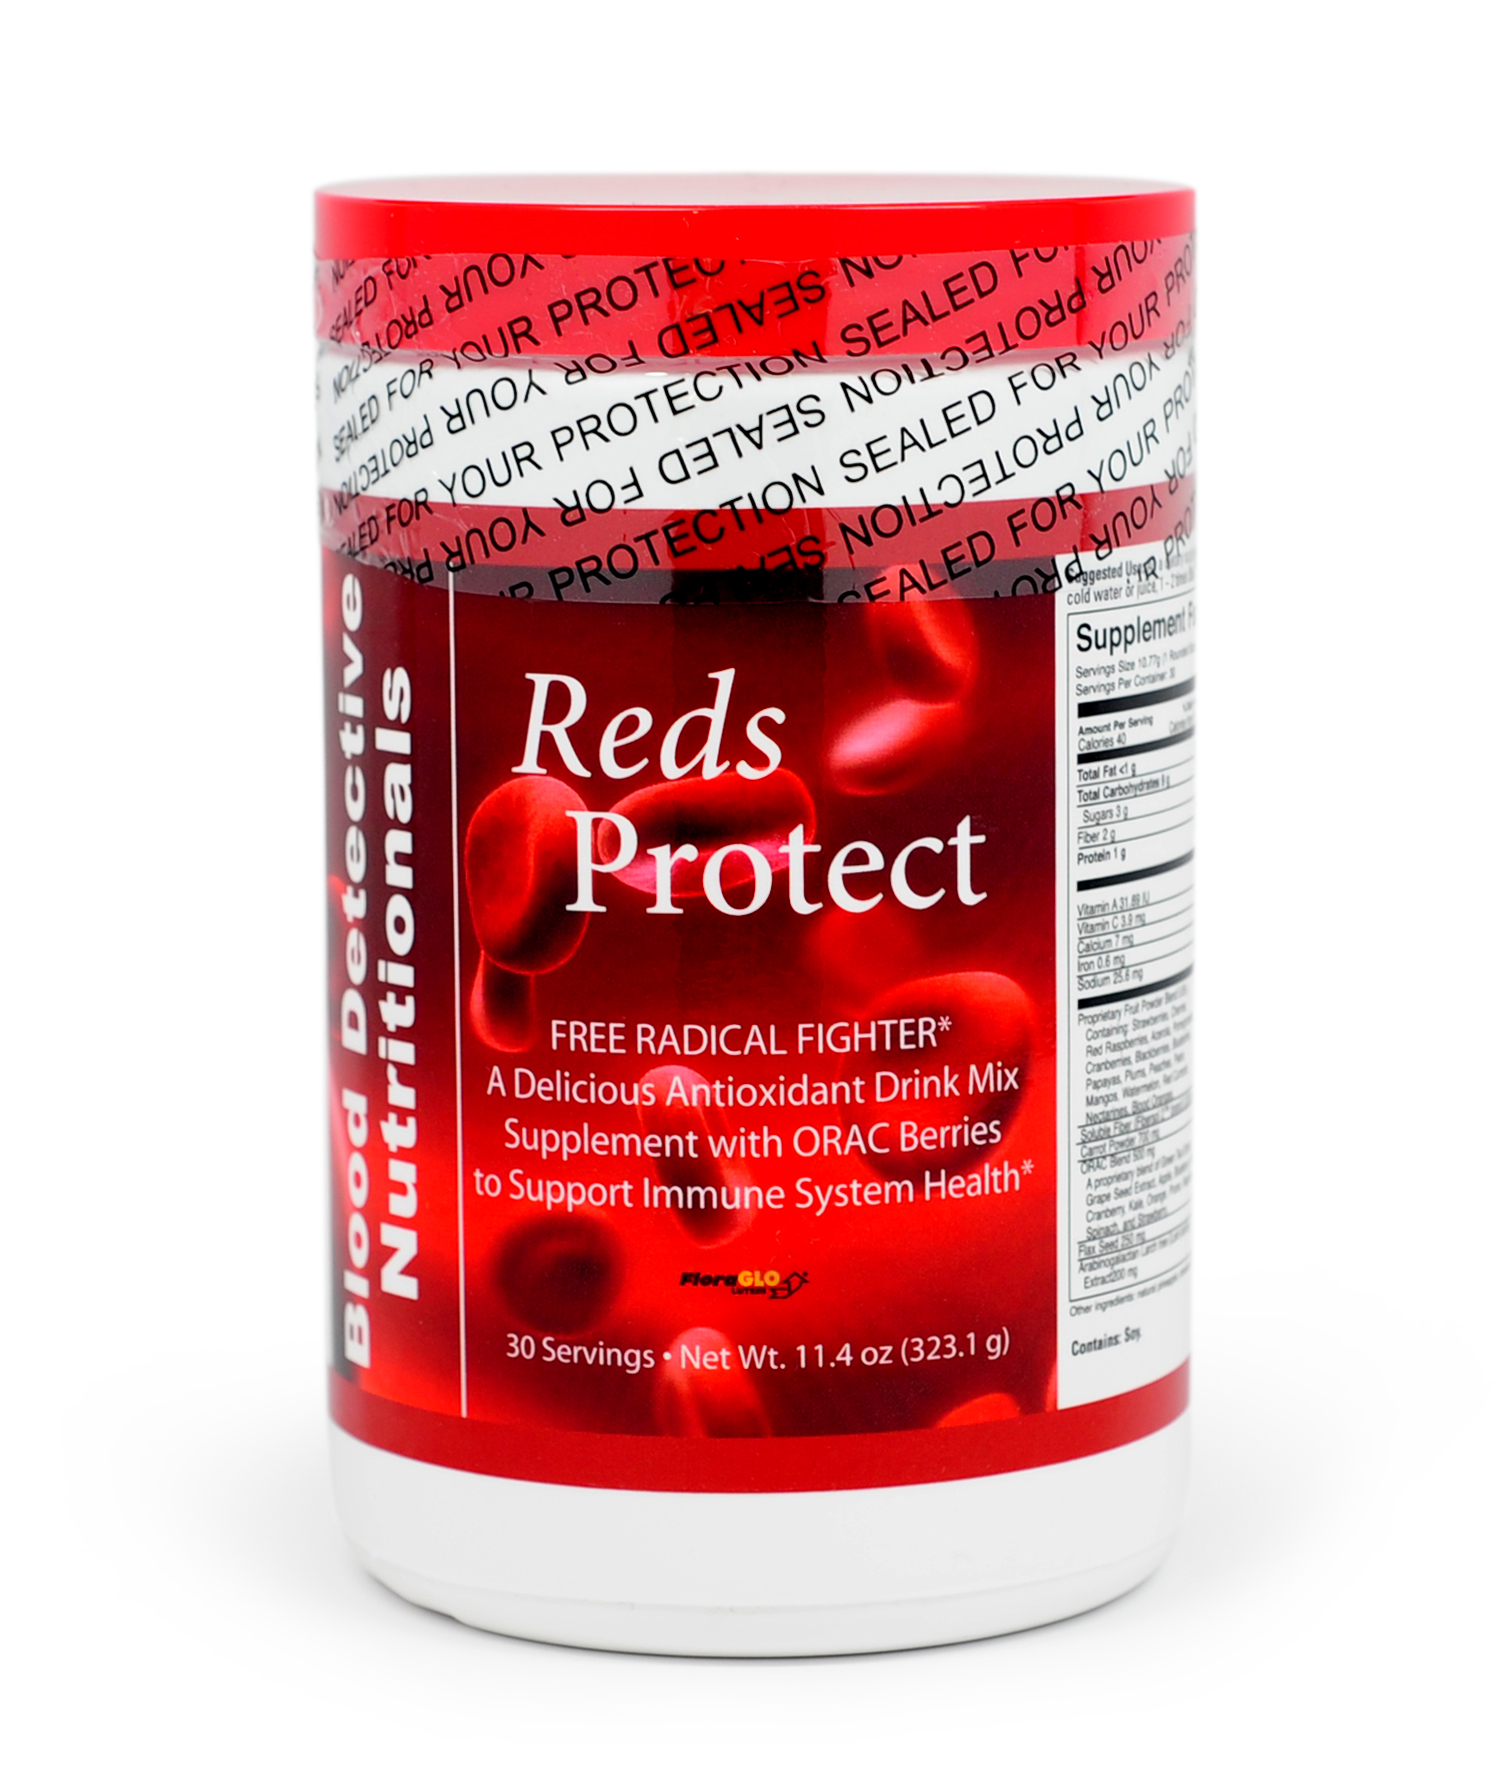 reds-protect-224x300.jpg